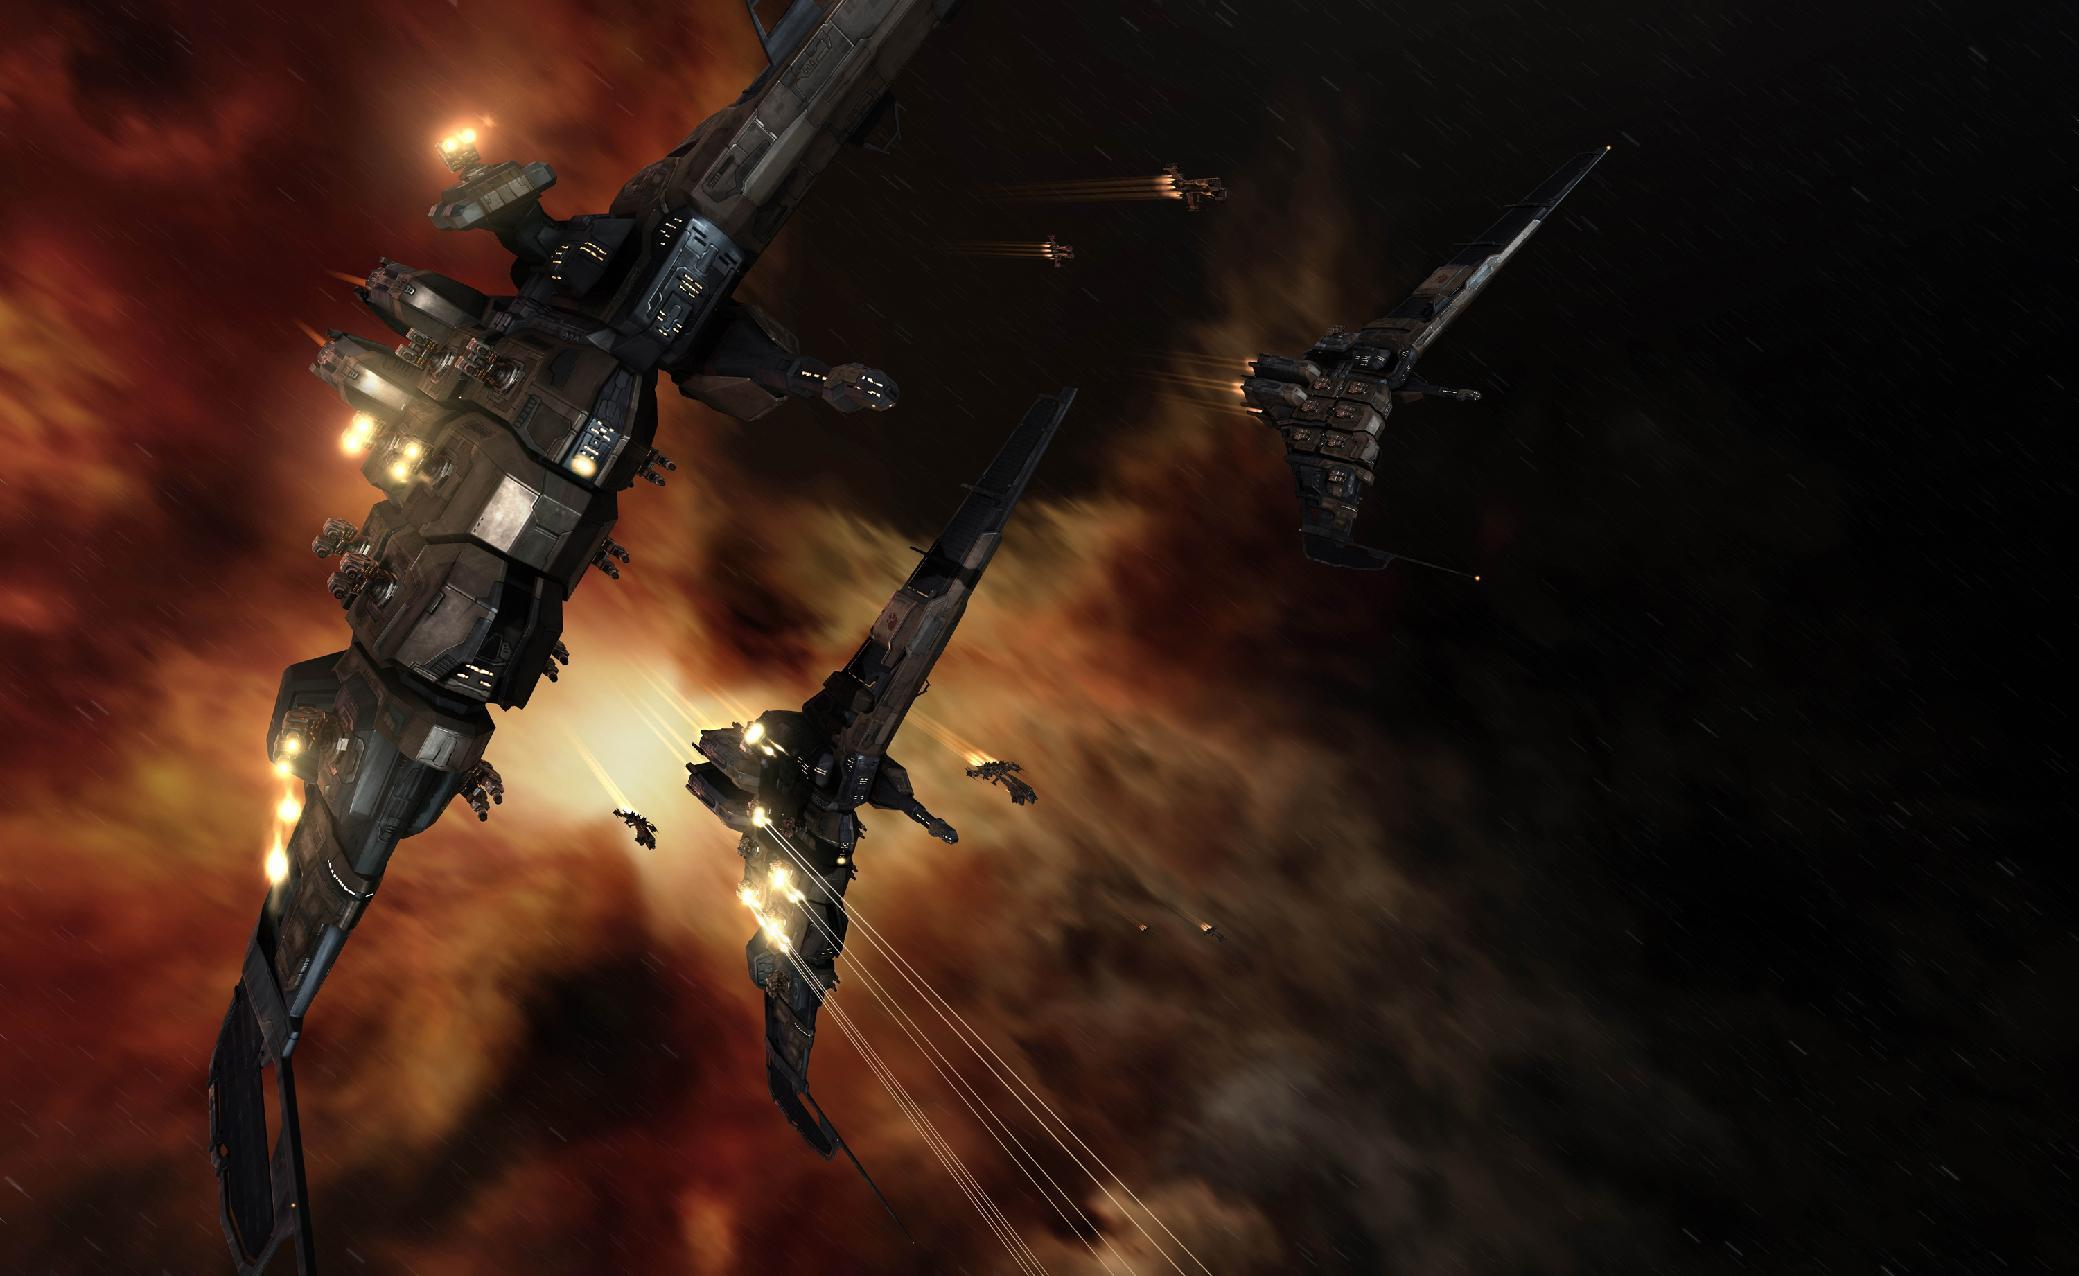 "FILE - This undated publicity file image provided by CCP Games shows a screenshot from the game ""EVE Online."" An unpaid bill in the online role-playing game ""EVE Online"" has led to a virtual space battle involving thousands of players with costly losses in real-world money. The siege on Monday, Jan. 27, 2014, marks the bloodiest battle in the game's 10-year history. (AP Photo/CCP Games, File)"